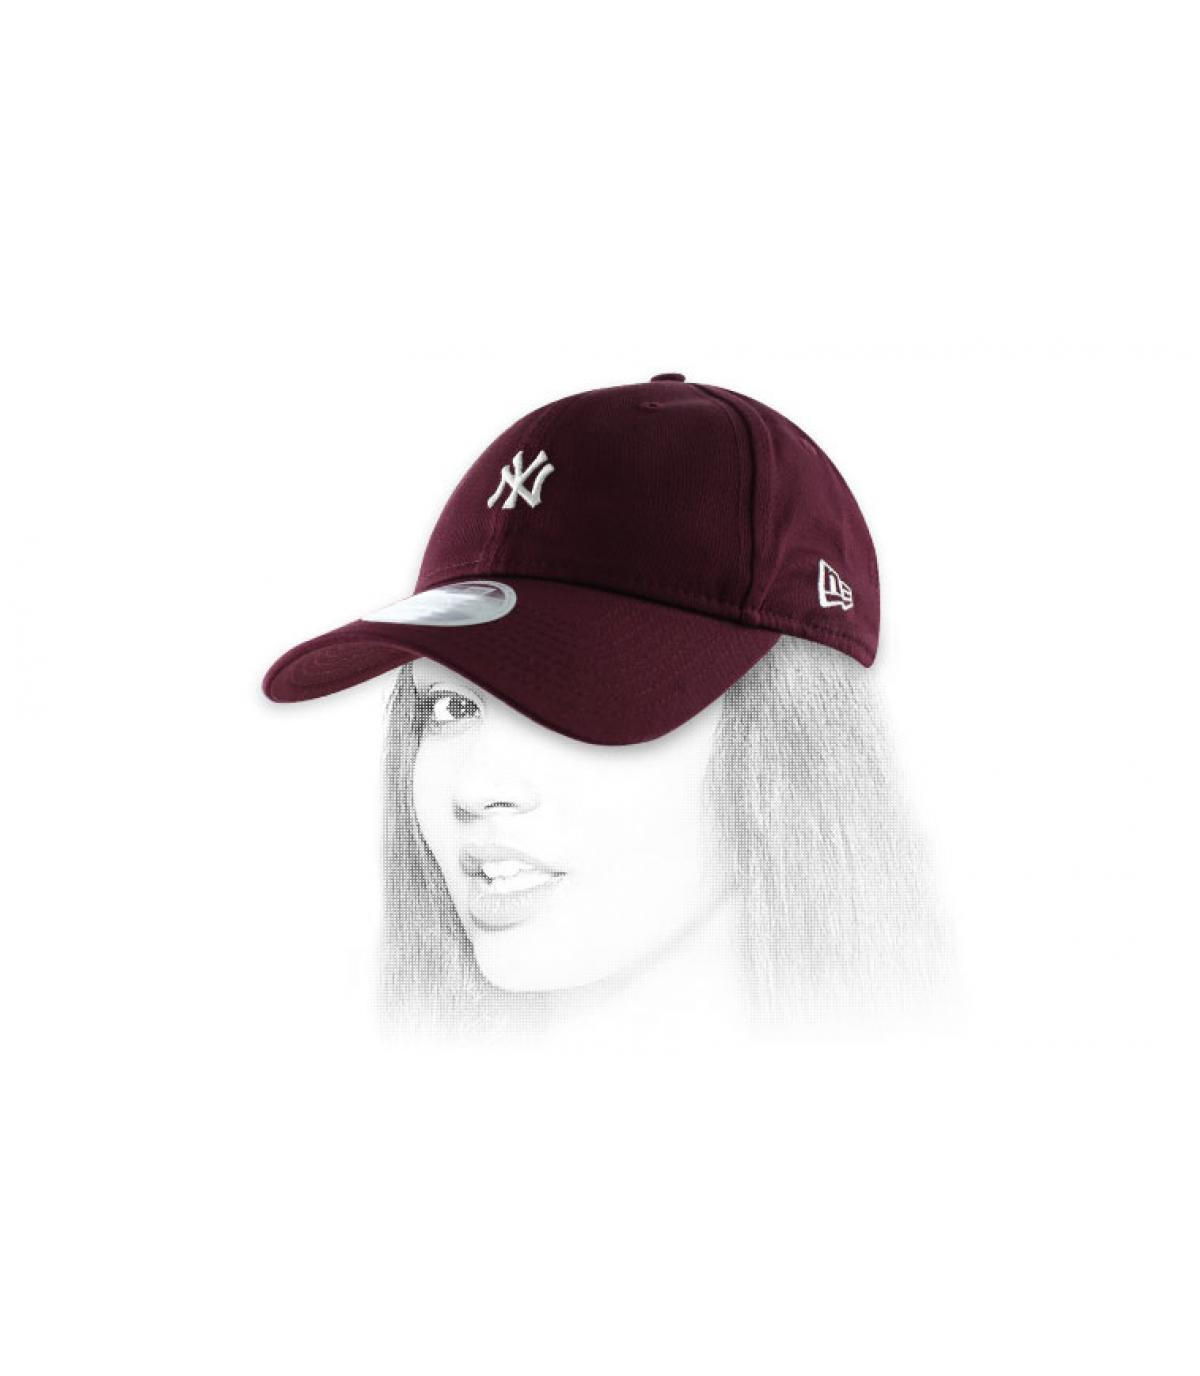 Casquette NY femmes